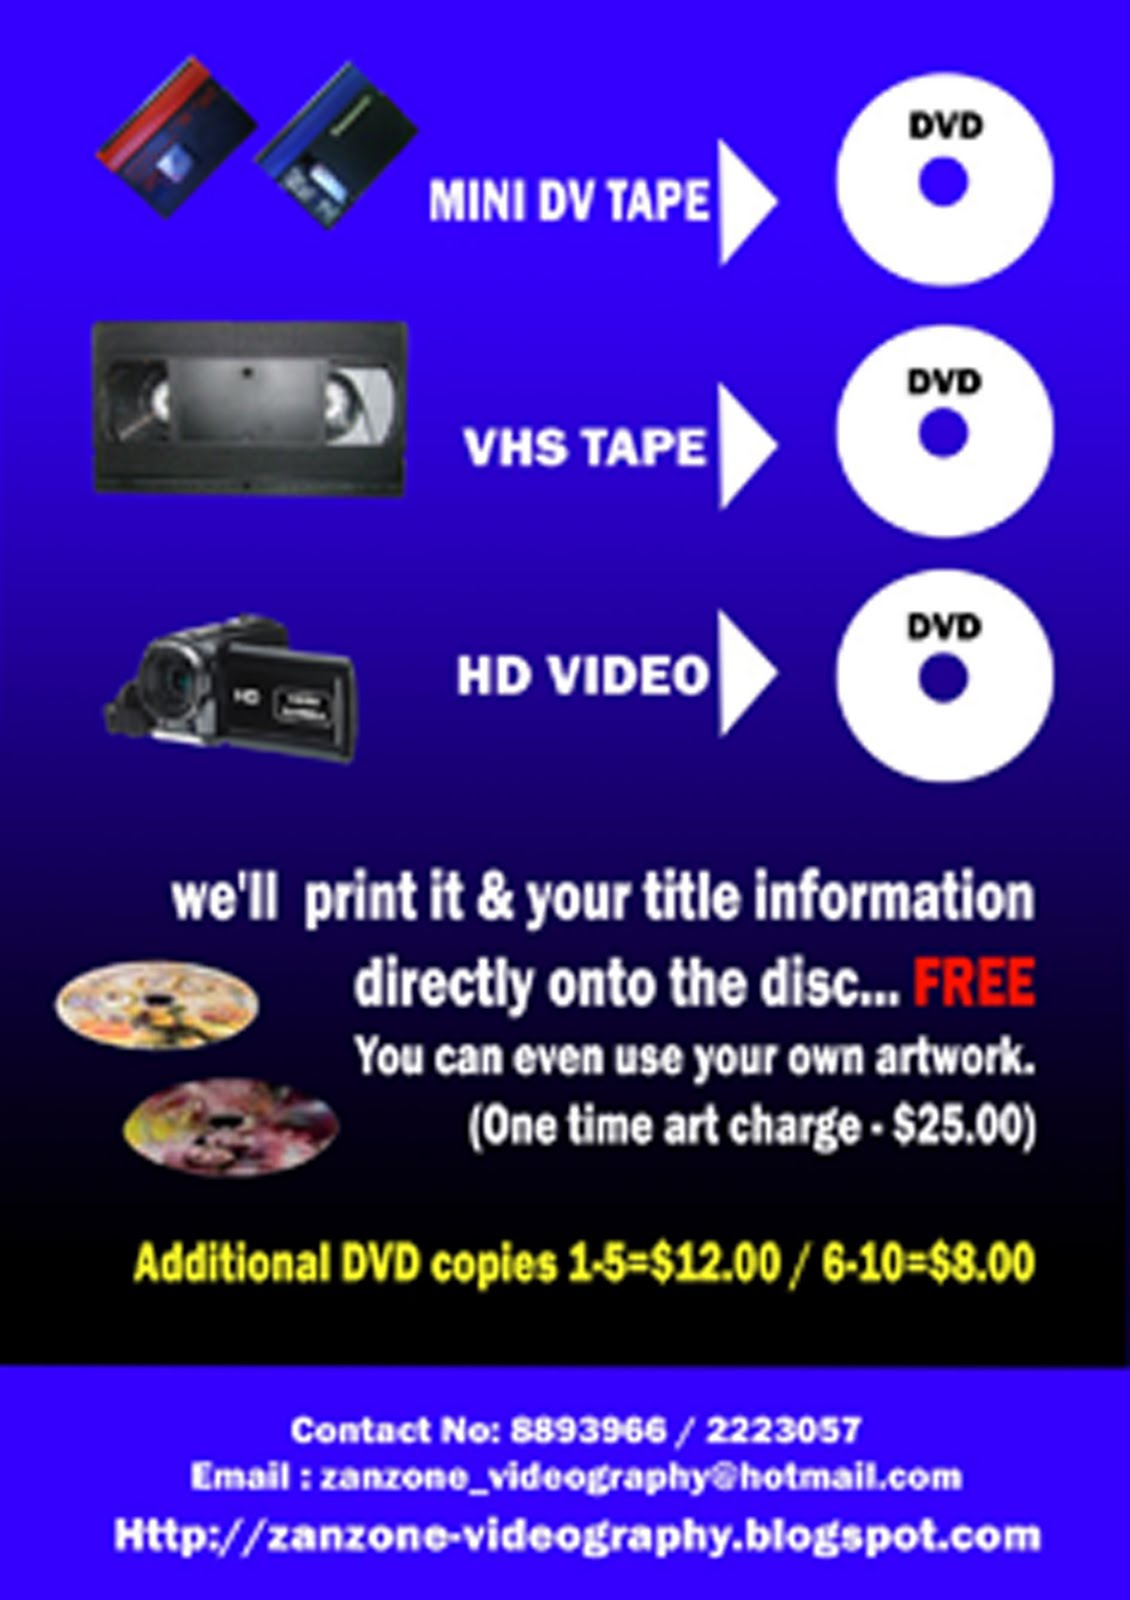 Transfer MINI DV, VHS TAPE, HD Video to DVD